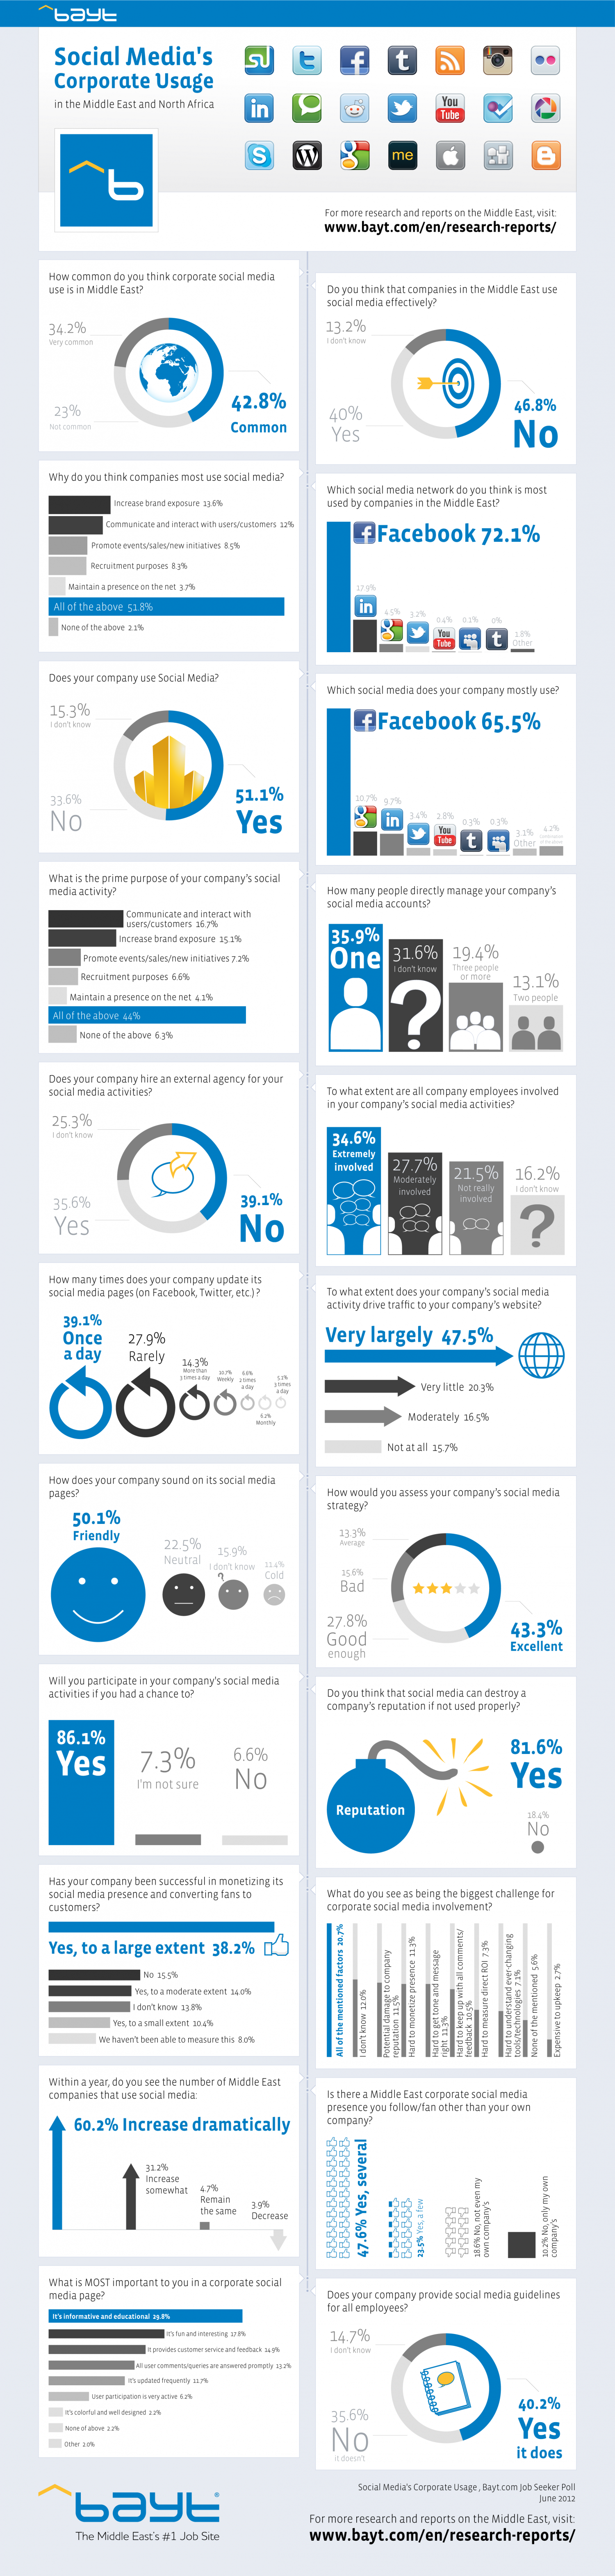 How Well are Companies in the Middle East Using Social Media? Infographic